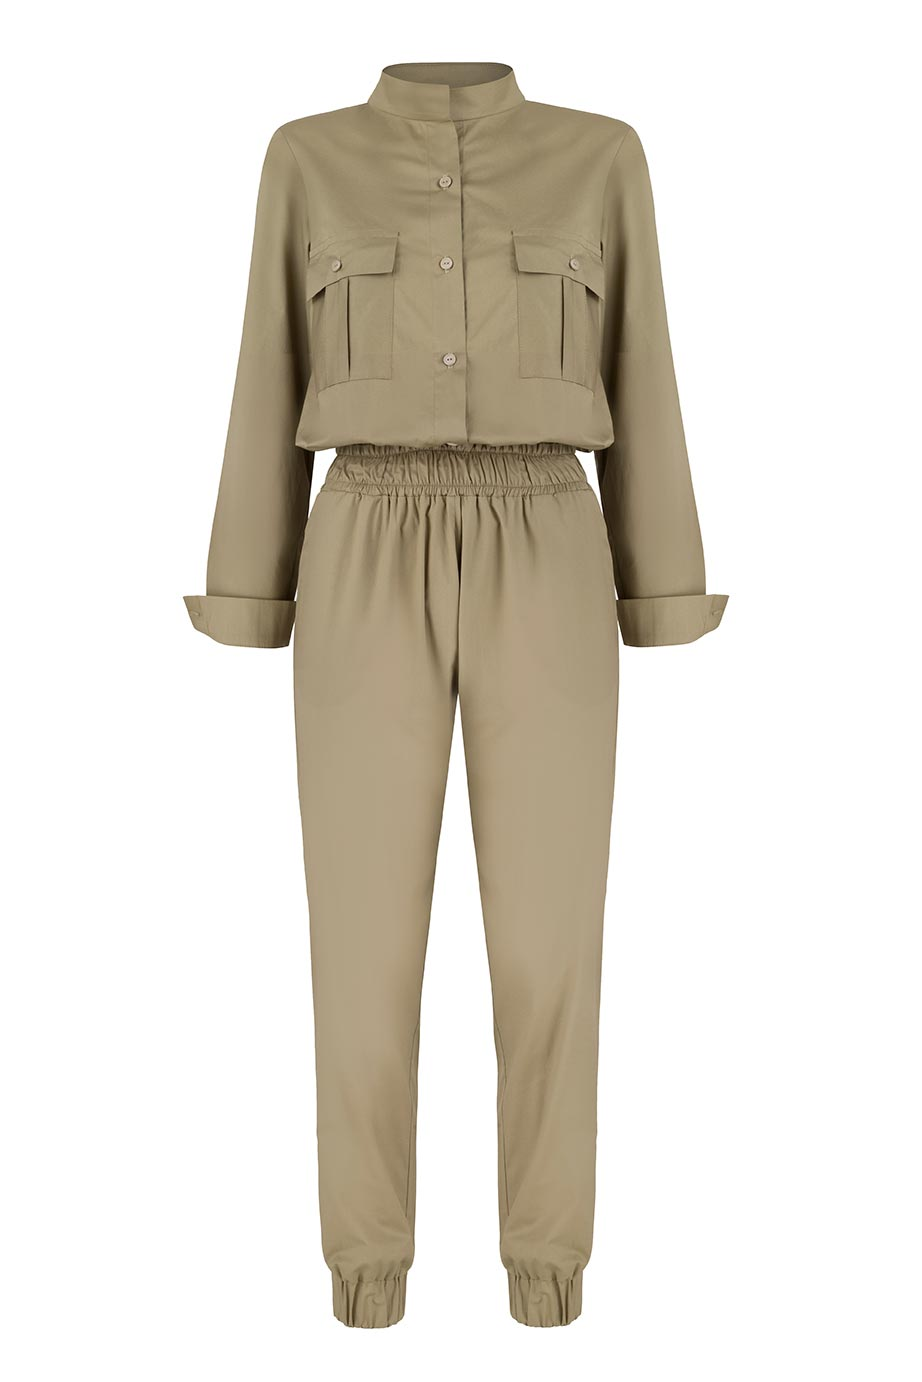 Jordan Maxi Jumpsuit by Monica Nera on curated-crowd.com